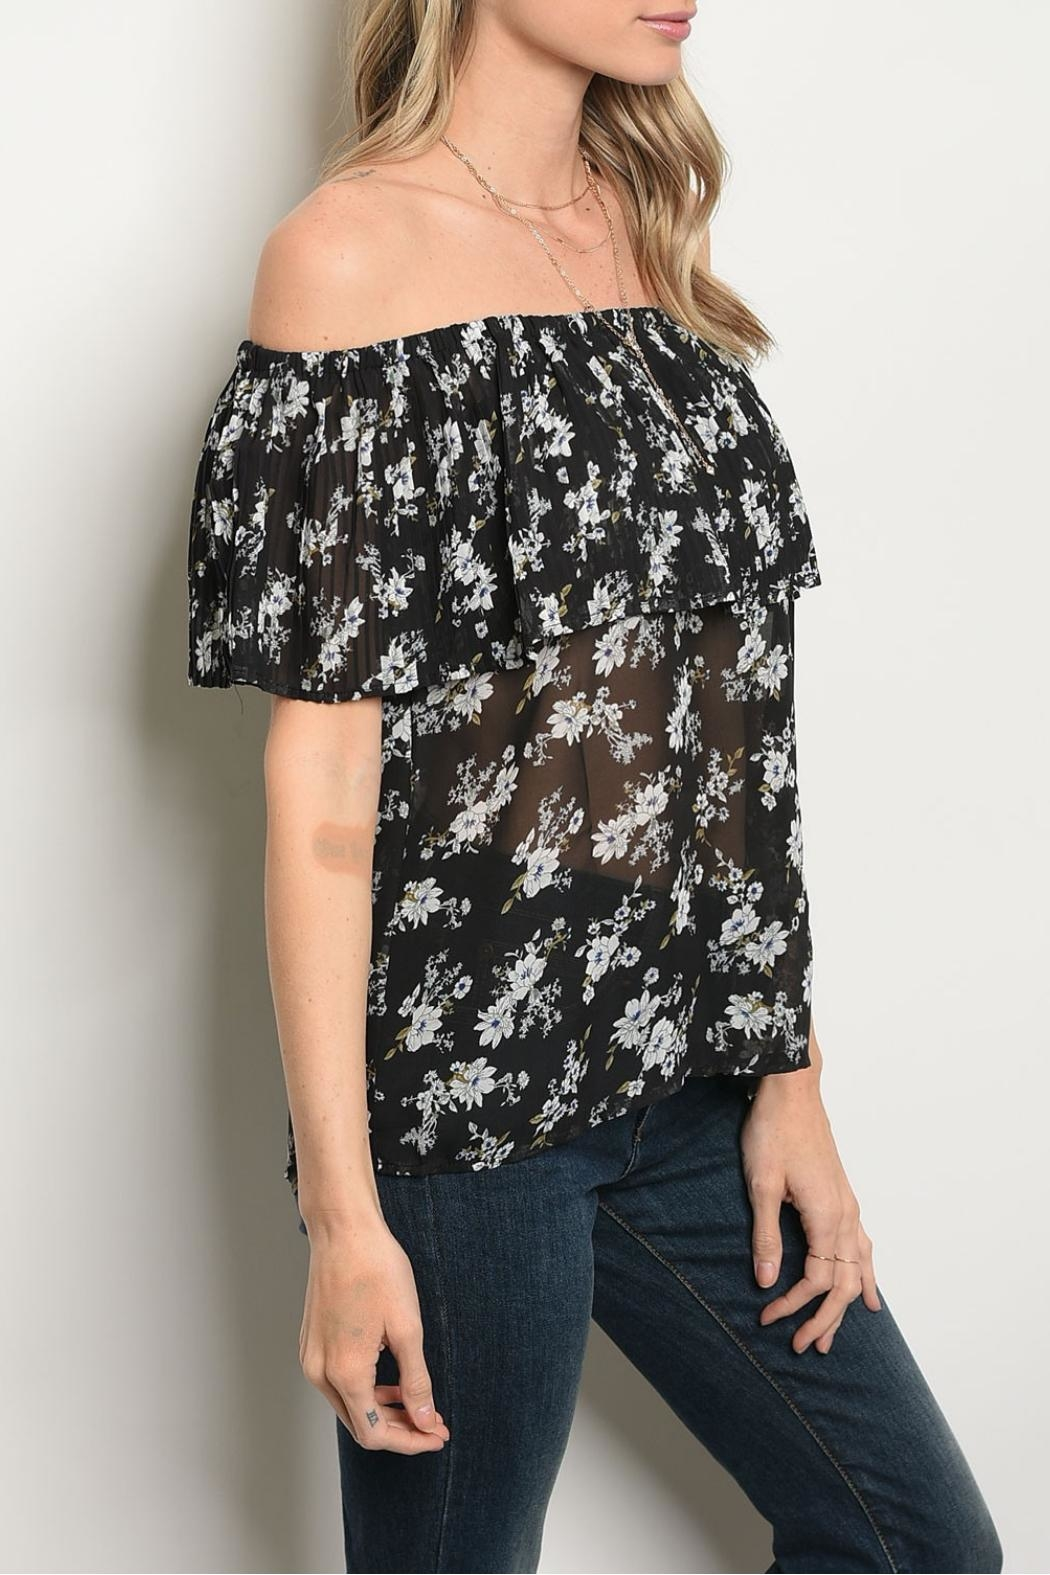 1156c94002f Alythea Black Floral Blouse from Kansas by twill tradE — Shoptiques